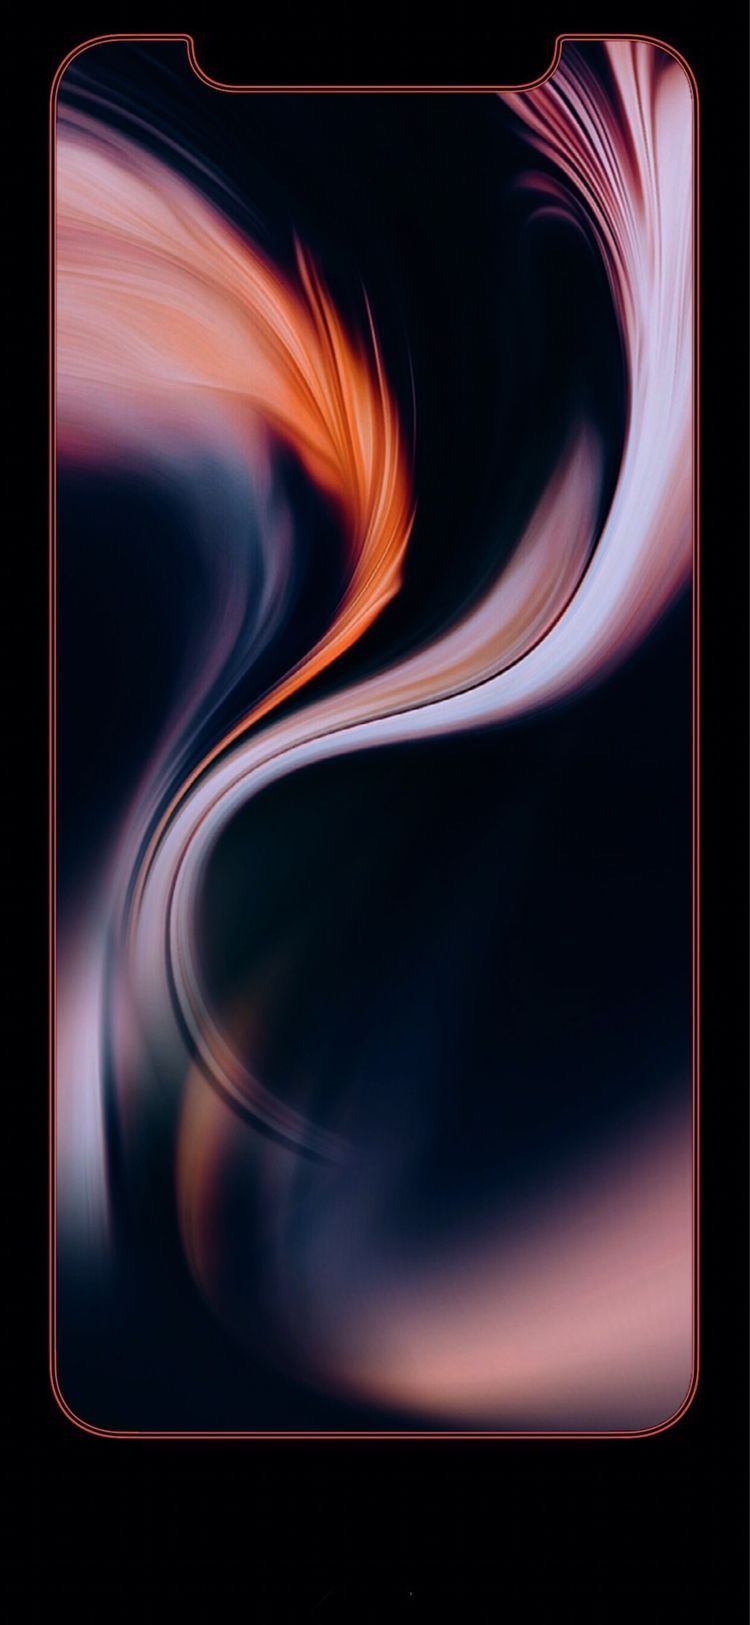 Pin by YelloMangu on iPhone XR Wallpapers Cool